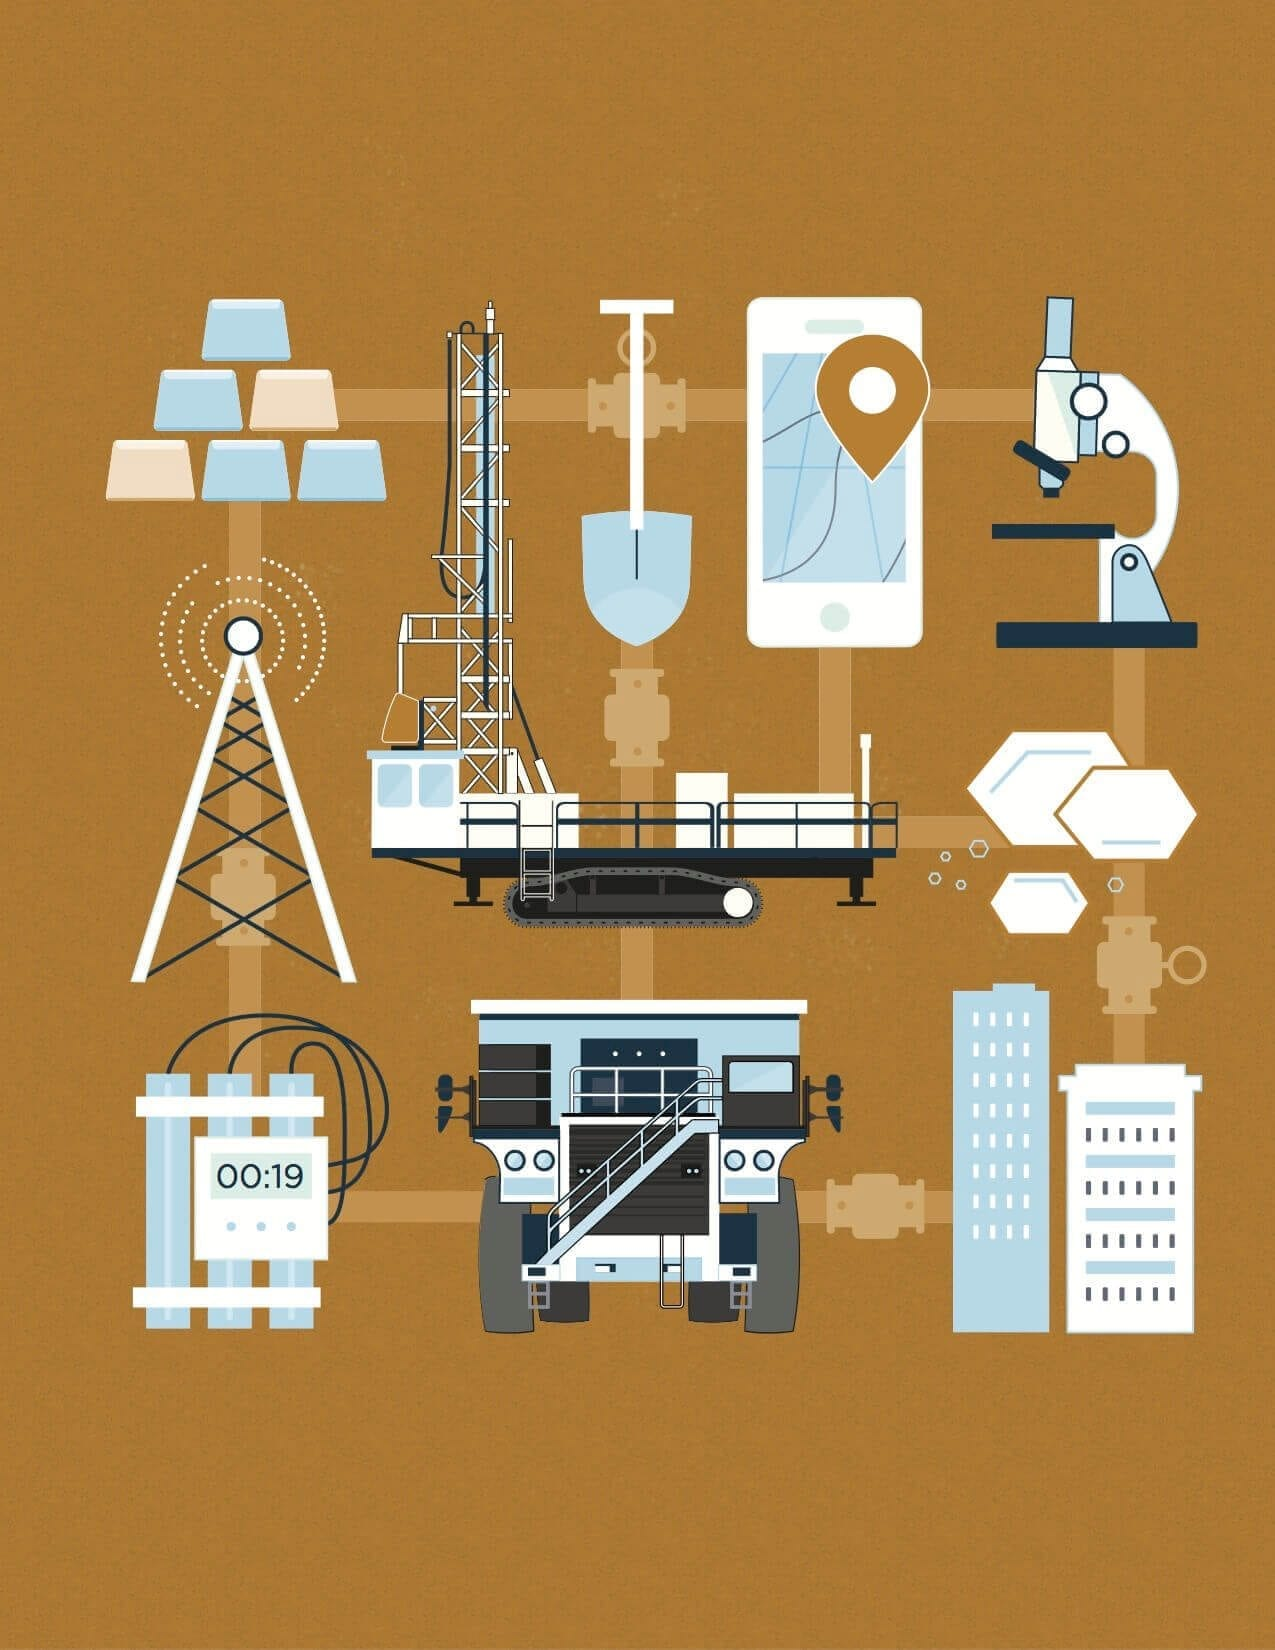 Mining & Metals + Internet of Things: Industry opportunities and innovation